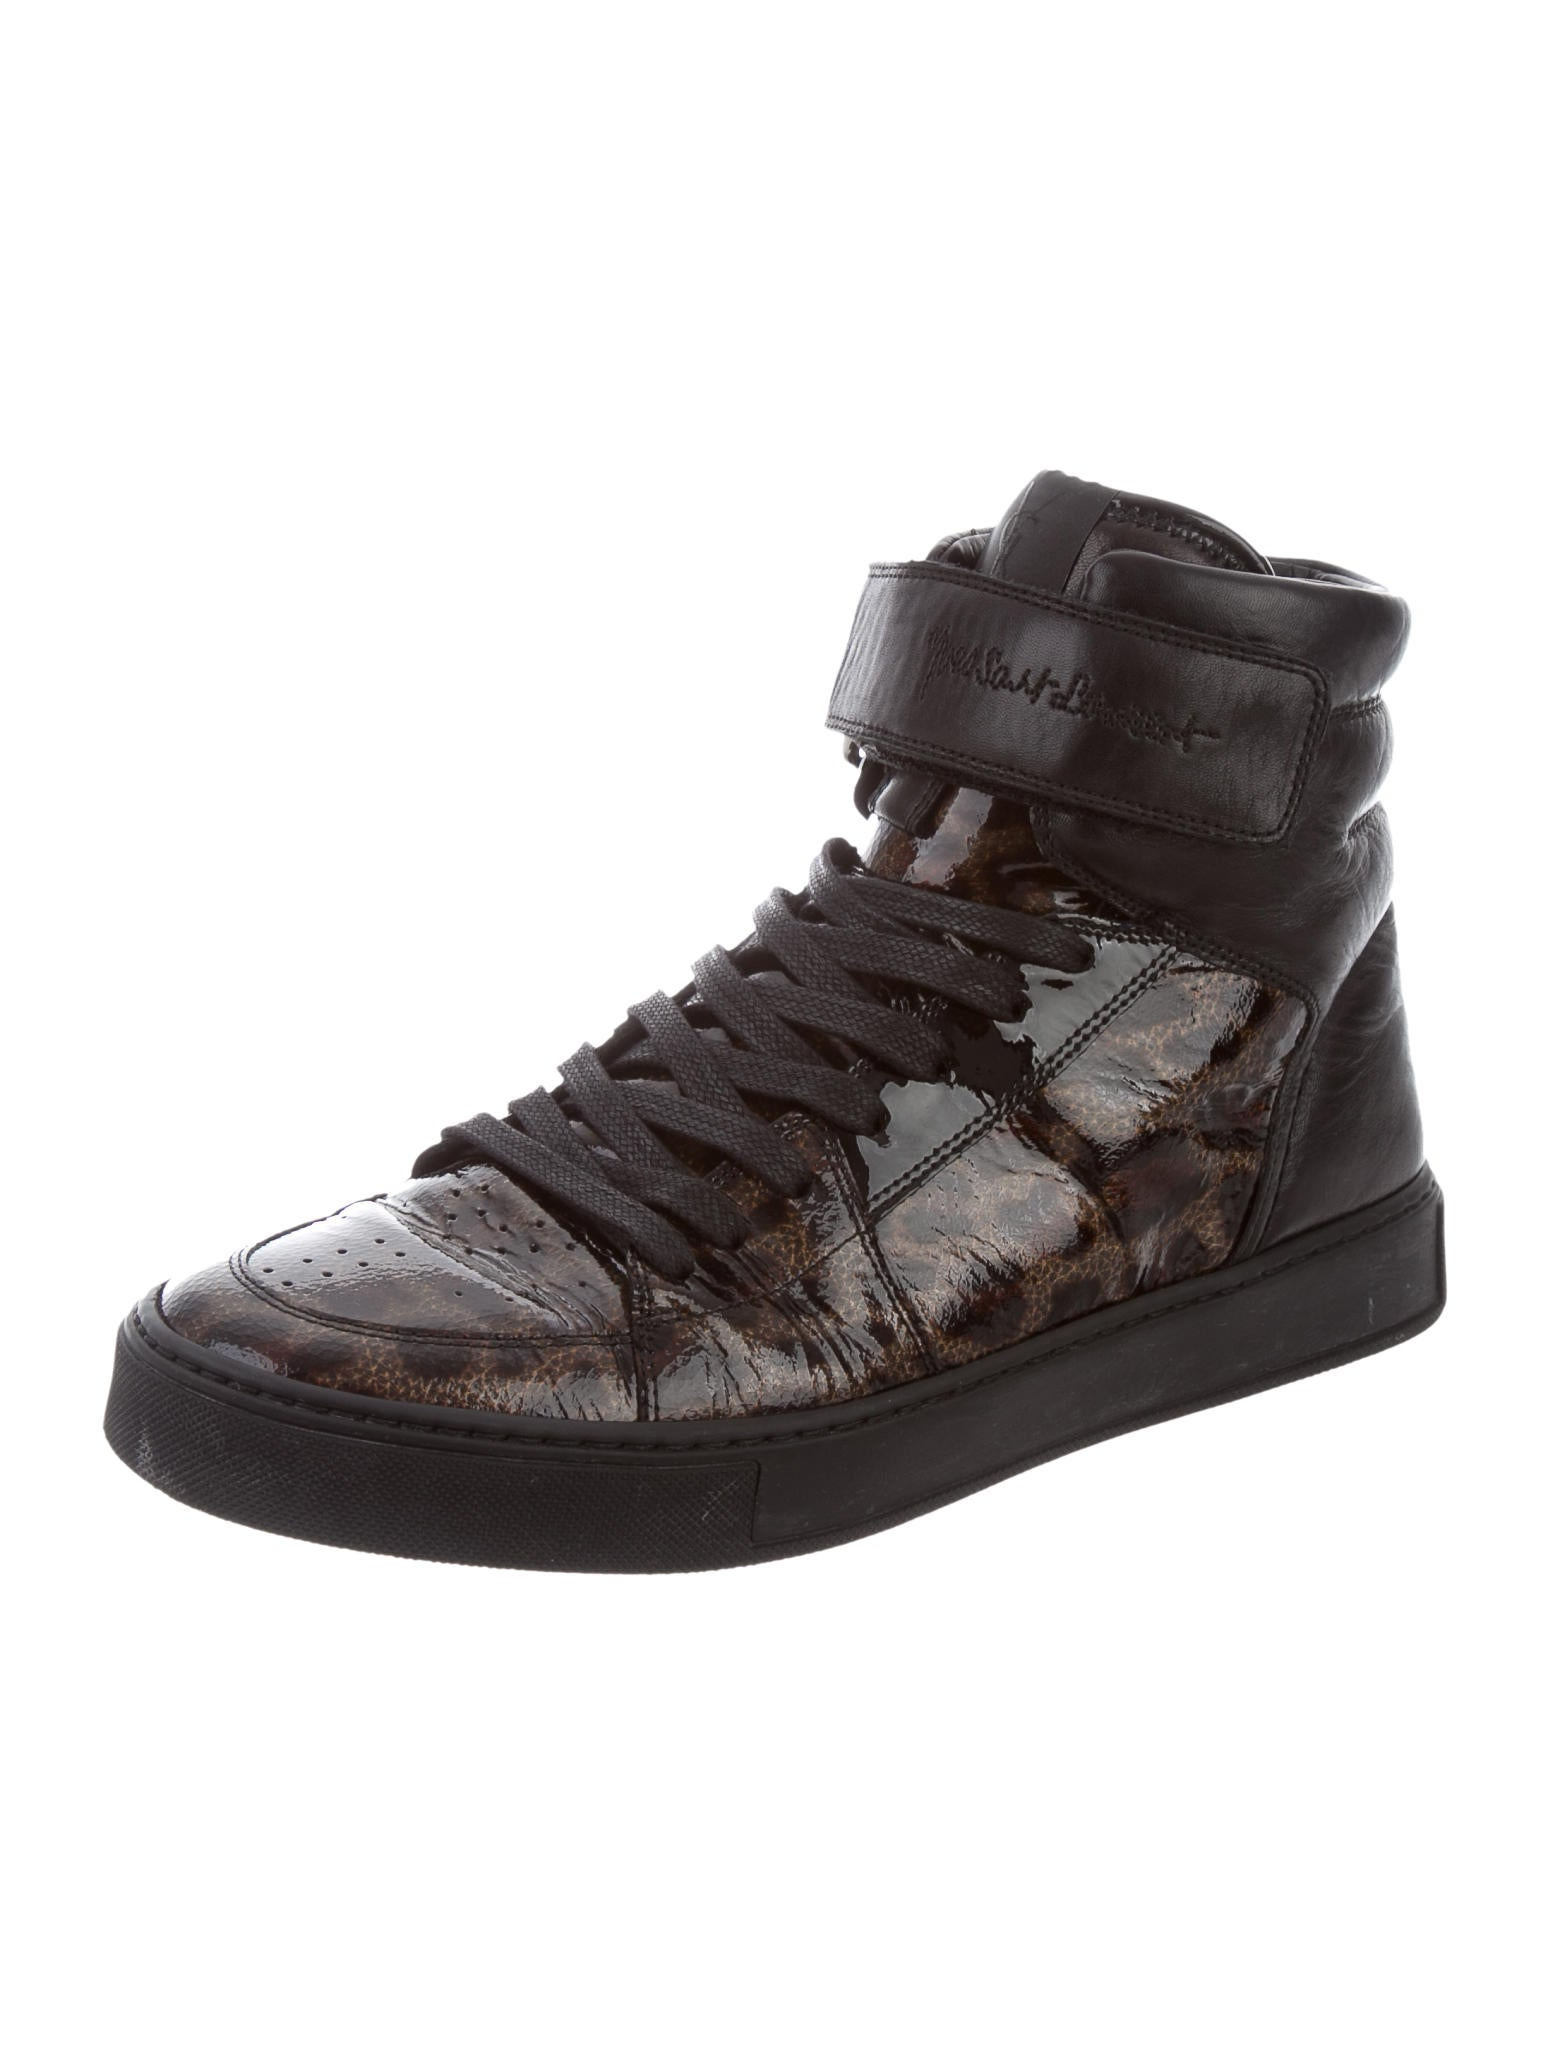 yves saint laurent leather animal print trimmed sneakers shoes yve64416 the realreal. Black Bedroom Furniture Sets. Home Design Ideas